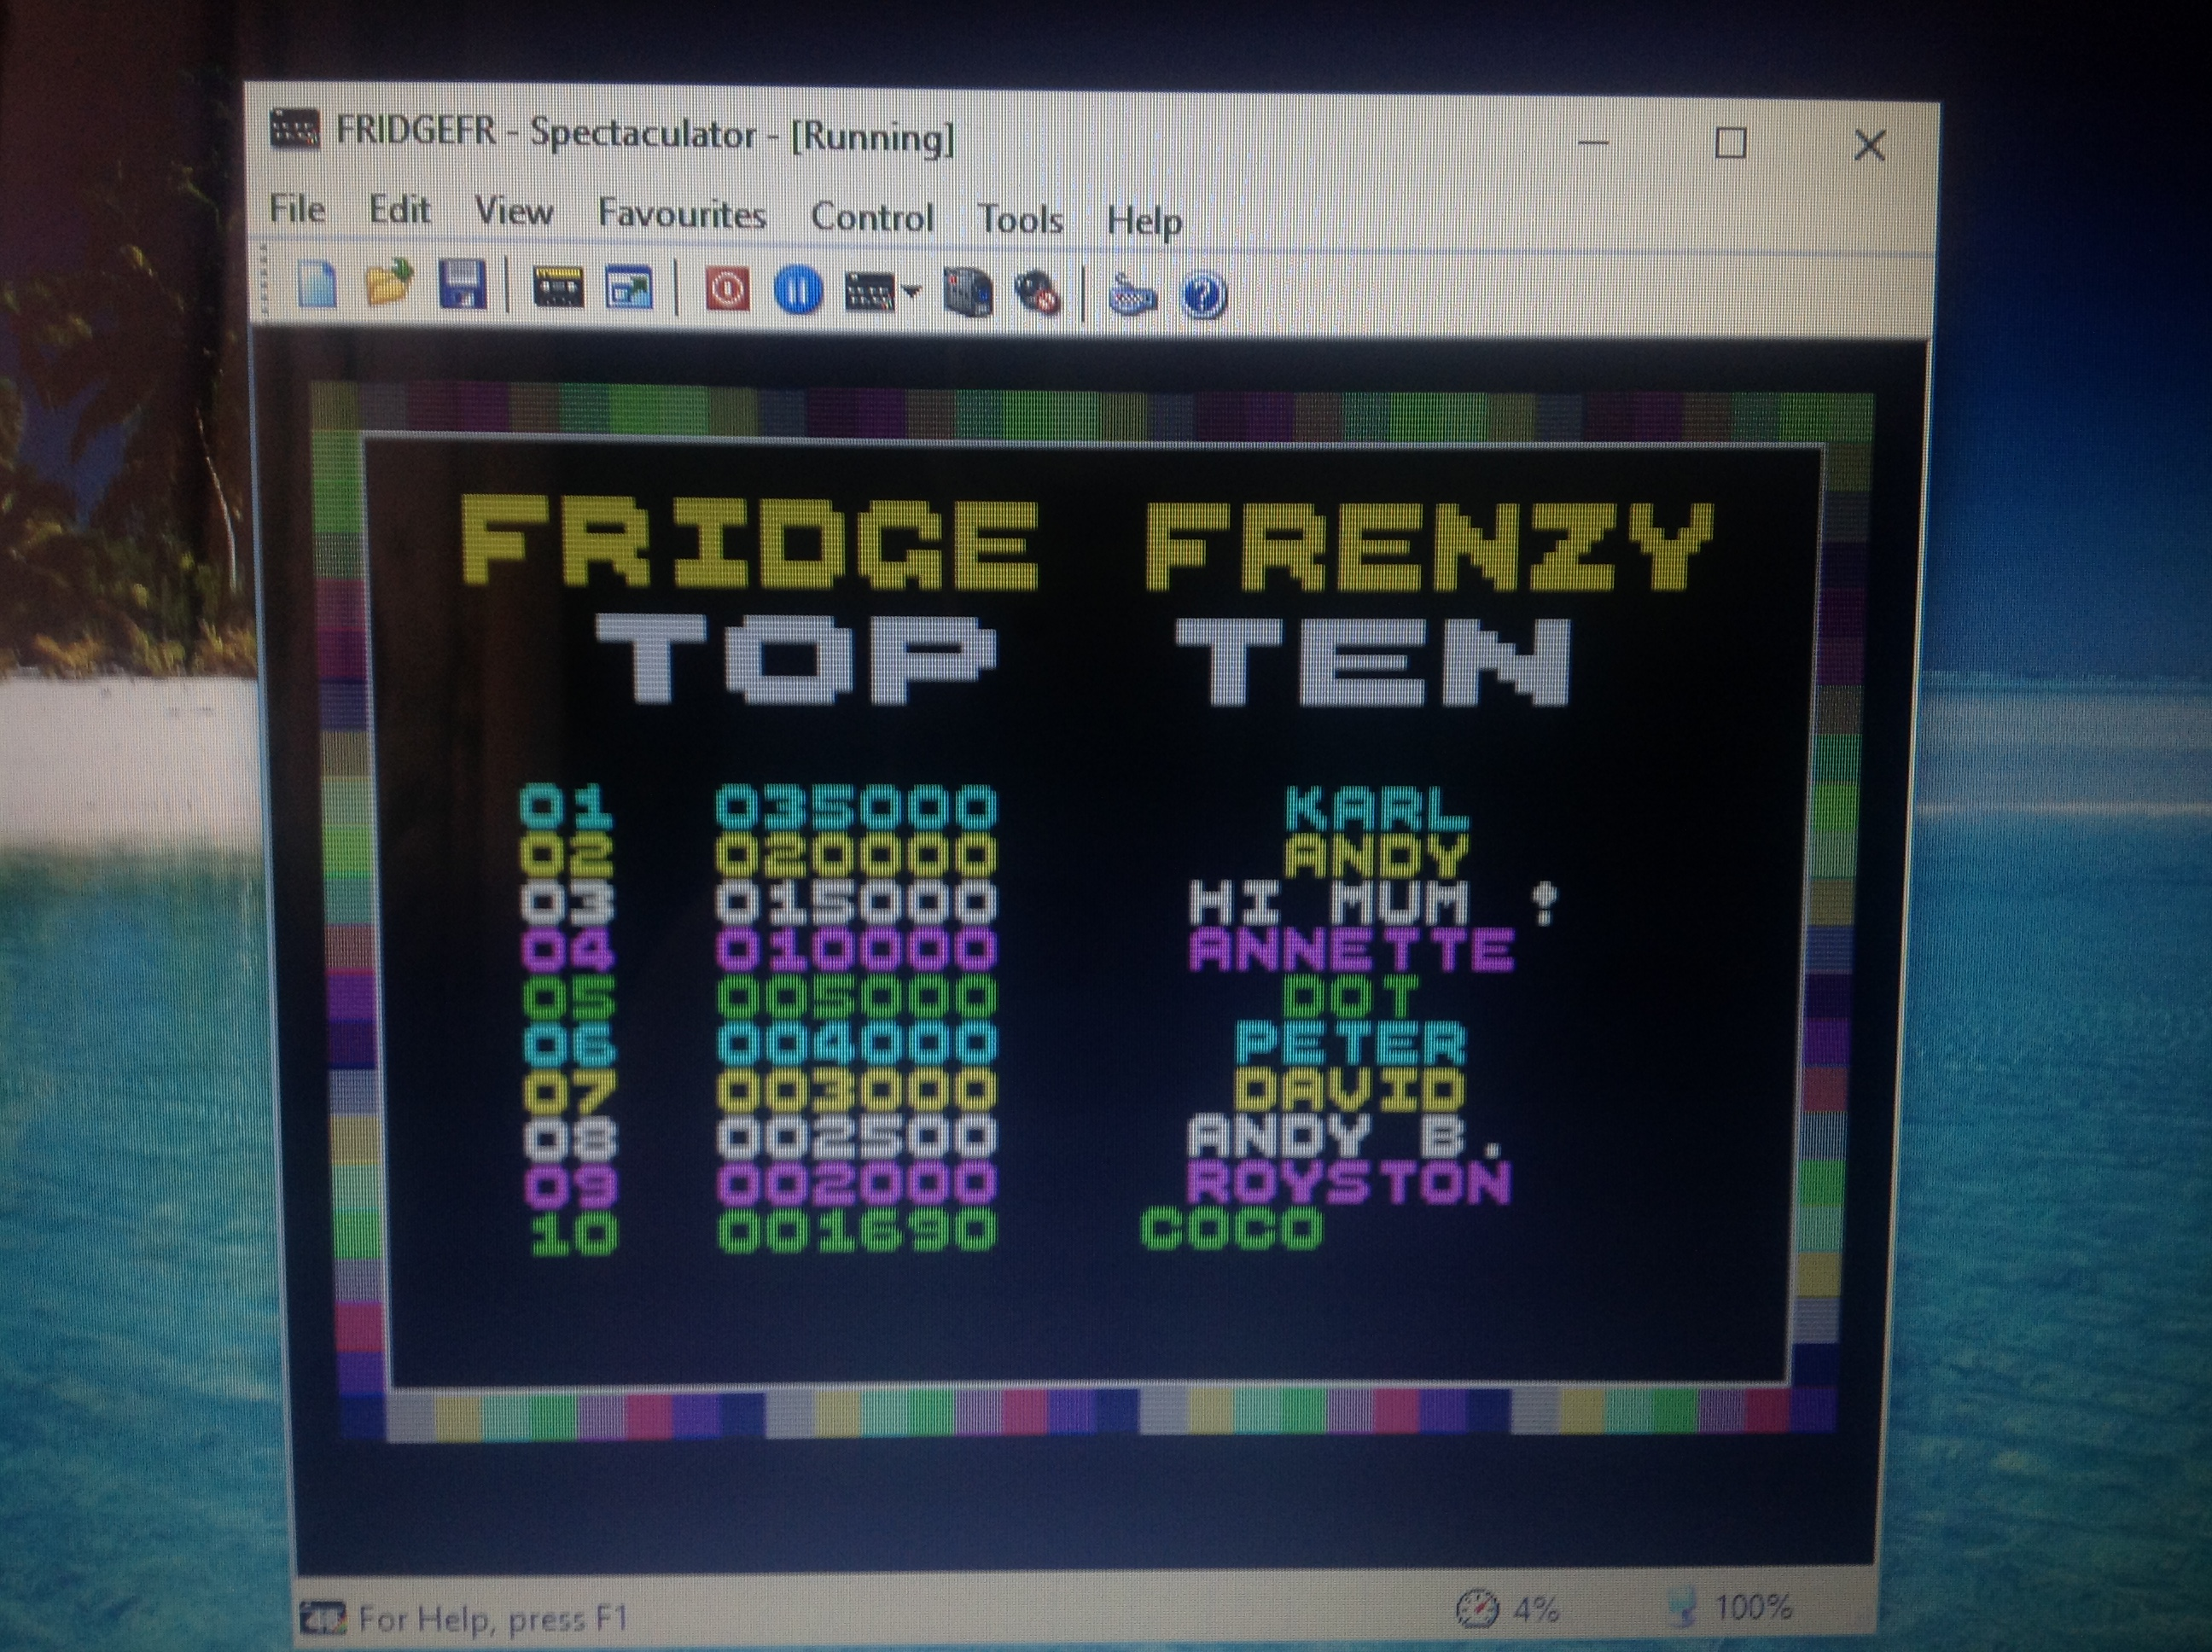 CoCoForest: Fridge Frenzy (ZX Spectrum Emulated) 1,690 points on 2017-08-07 11:36:10